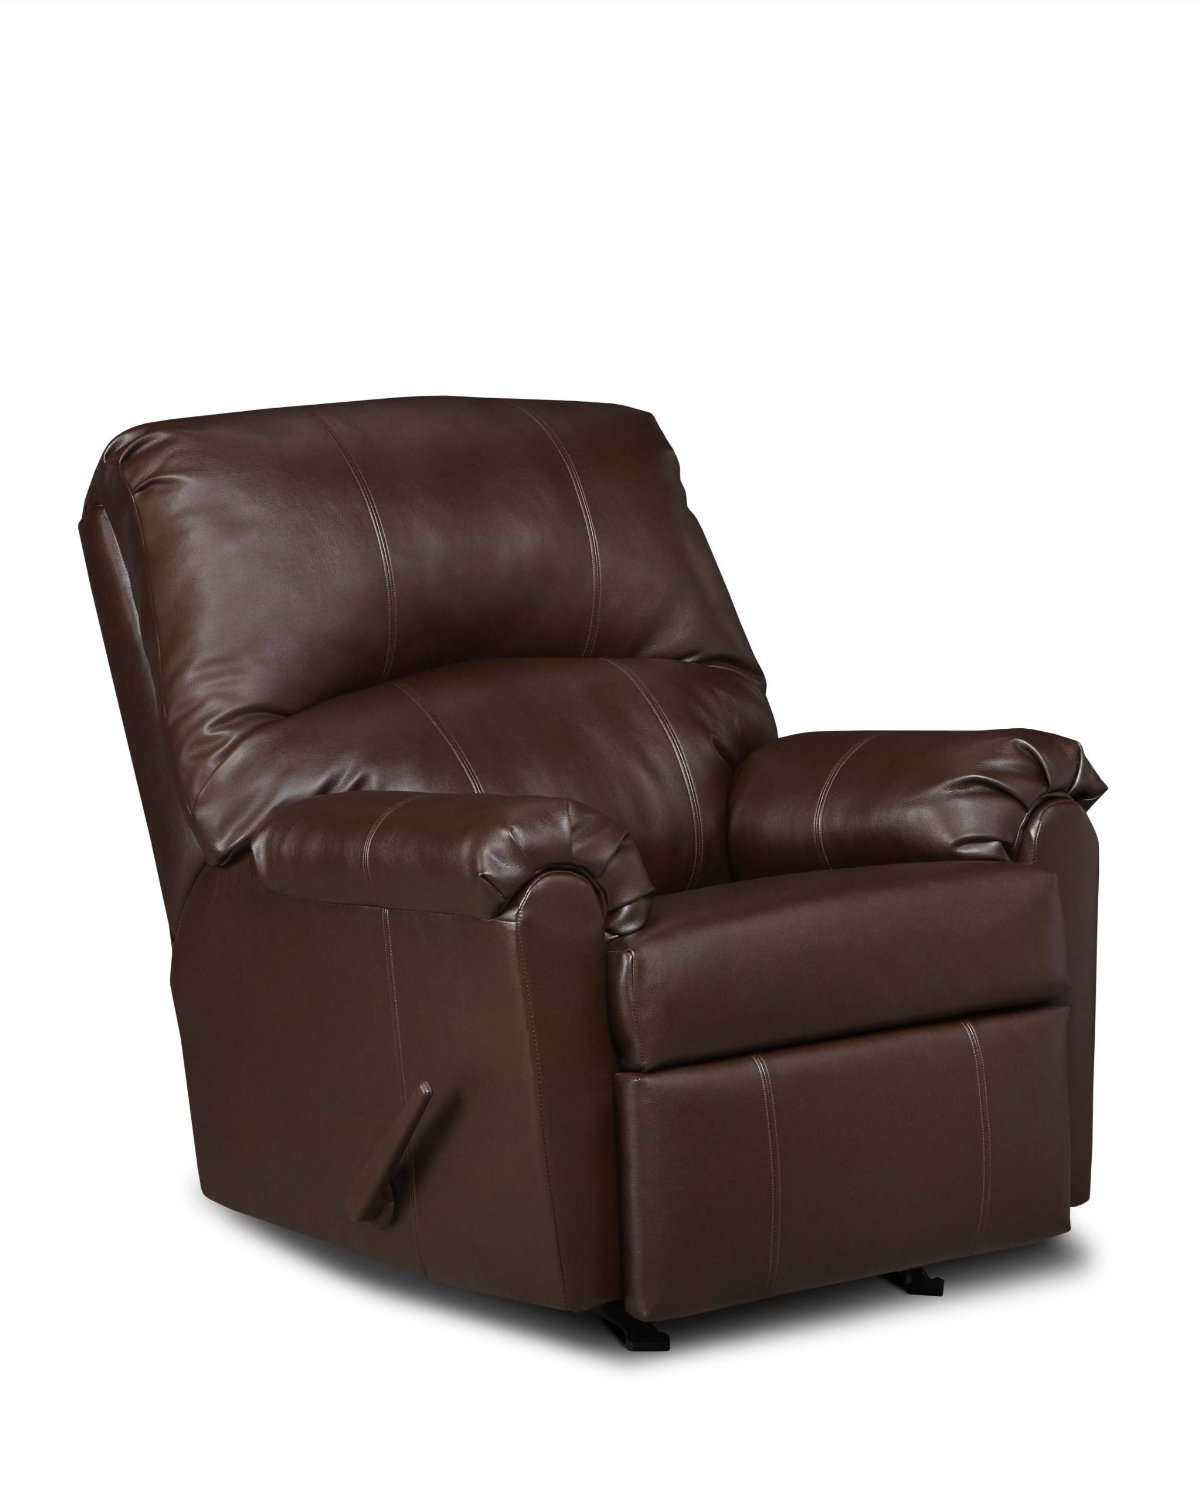 Leather Wall Hugger Recliners Wall Hugger Recliners